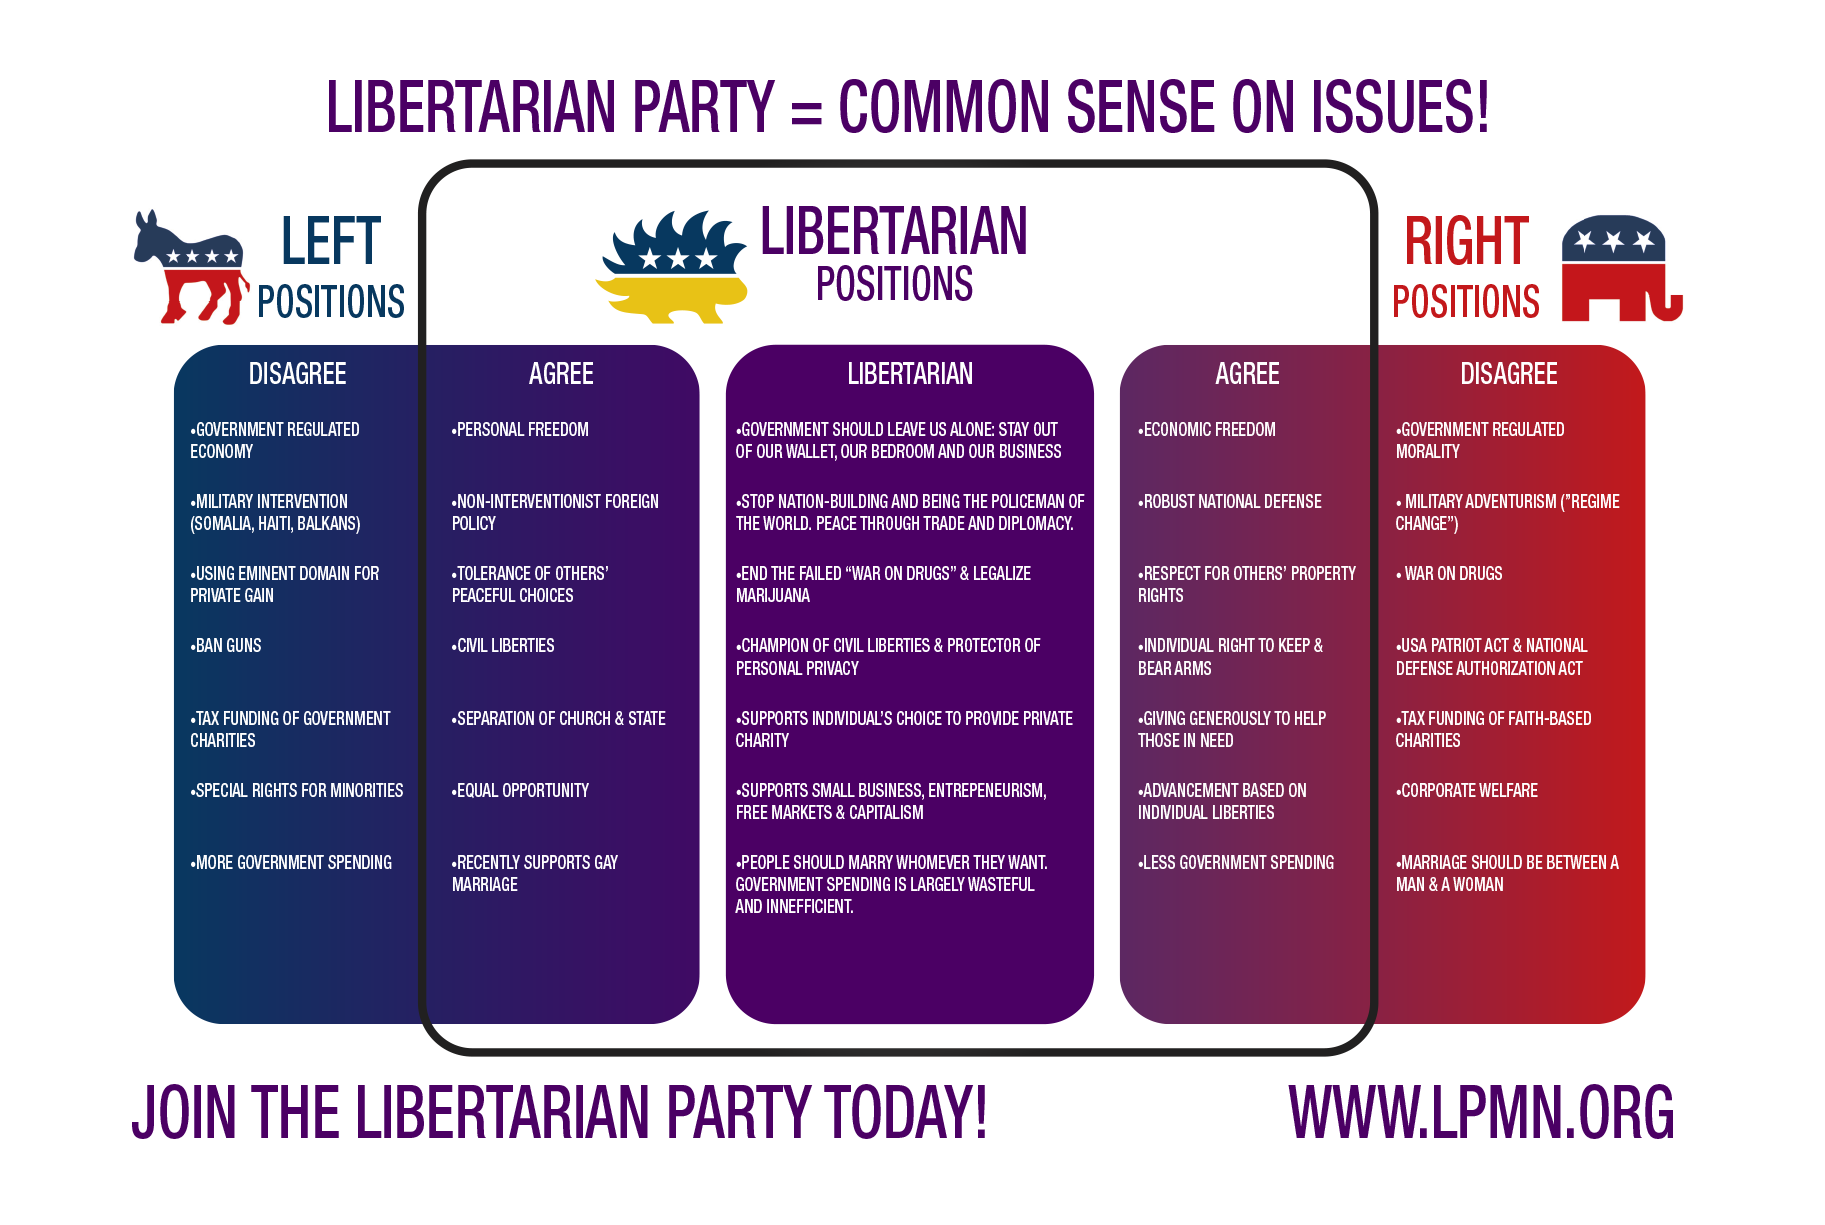 an analysis of the topic of the libertarian party Libertarian views in the republican party:  according to my analysis of american national  libertarian voters were a research topic of interest to a small.